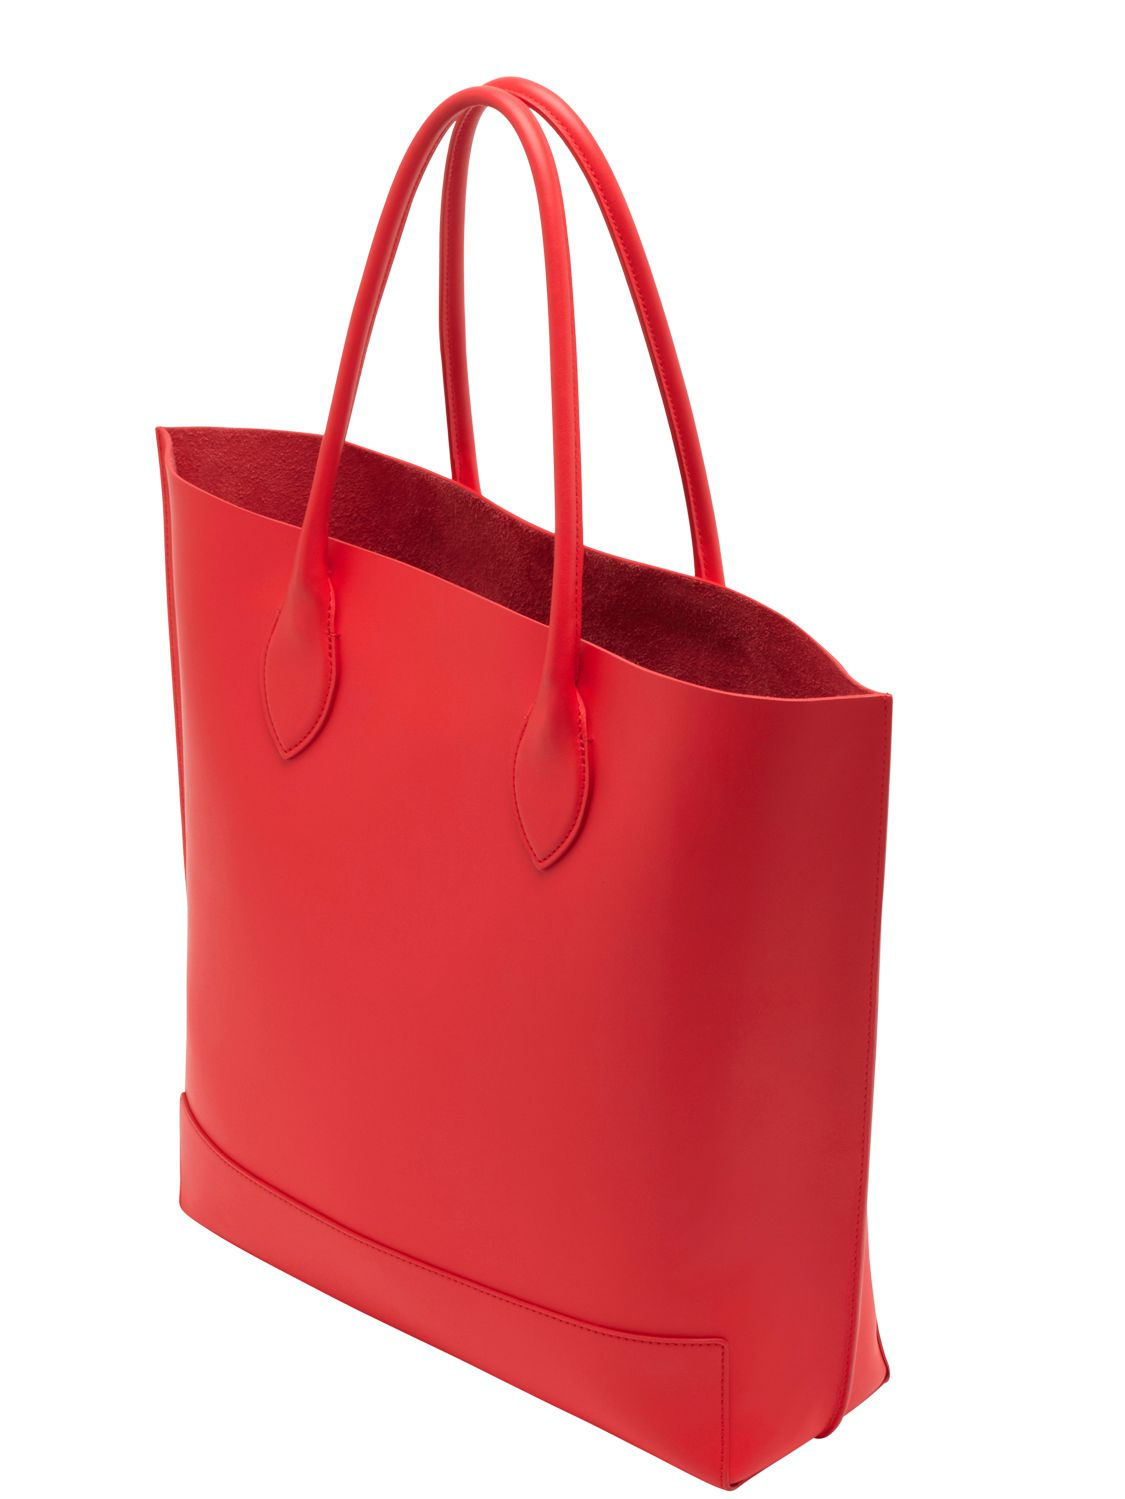 Red, Leather Tote Bags: hereffil53.cf - Your Online Shop By Style Store! Get 5% in rewards with Club O!